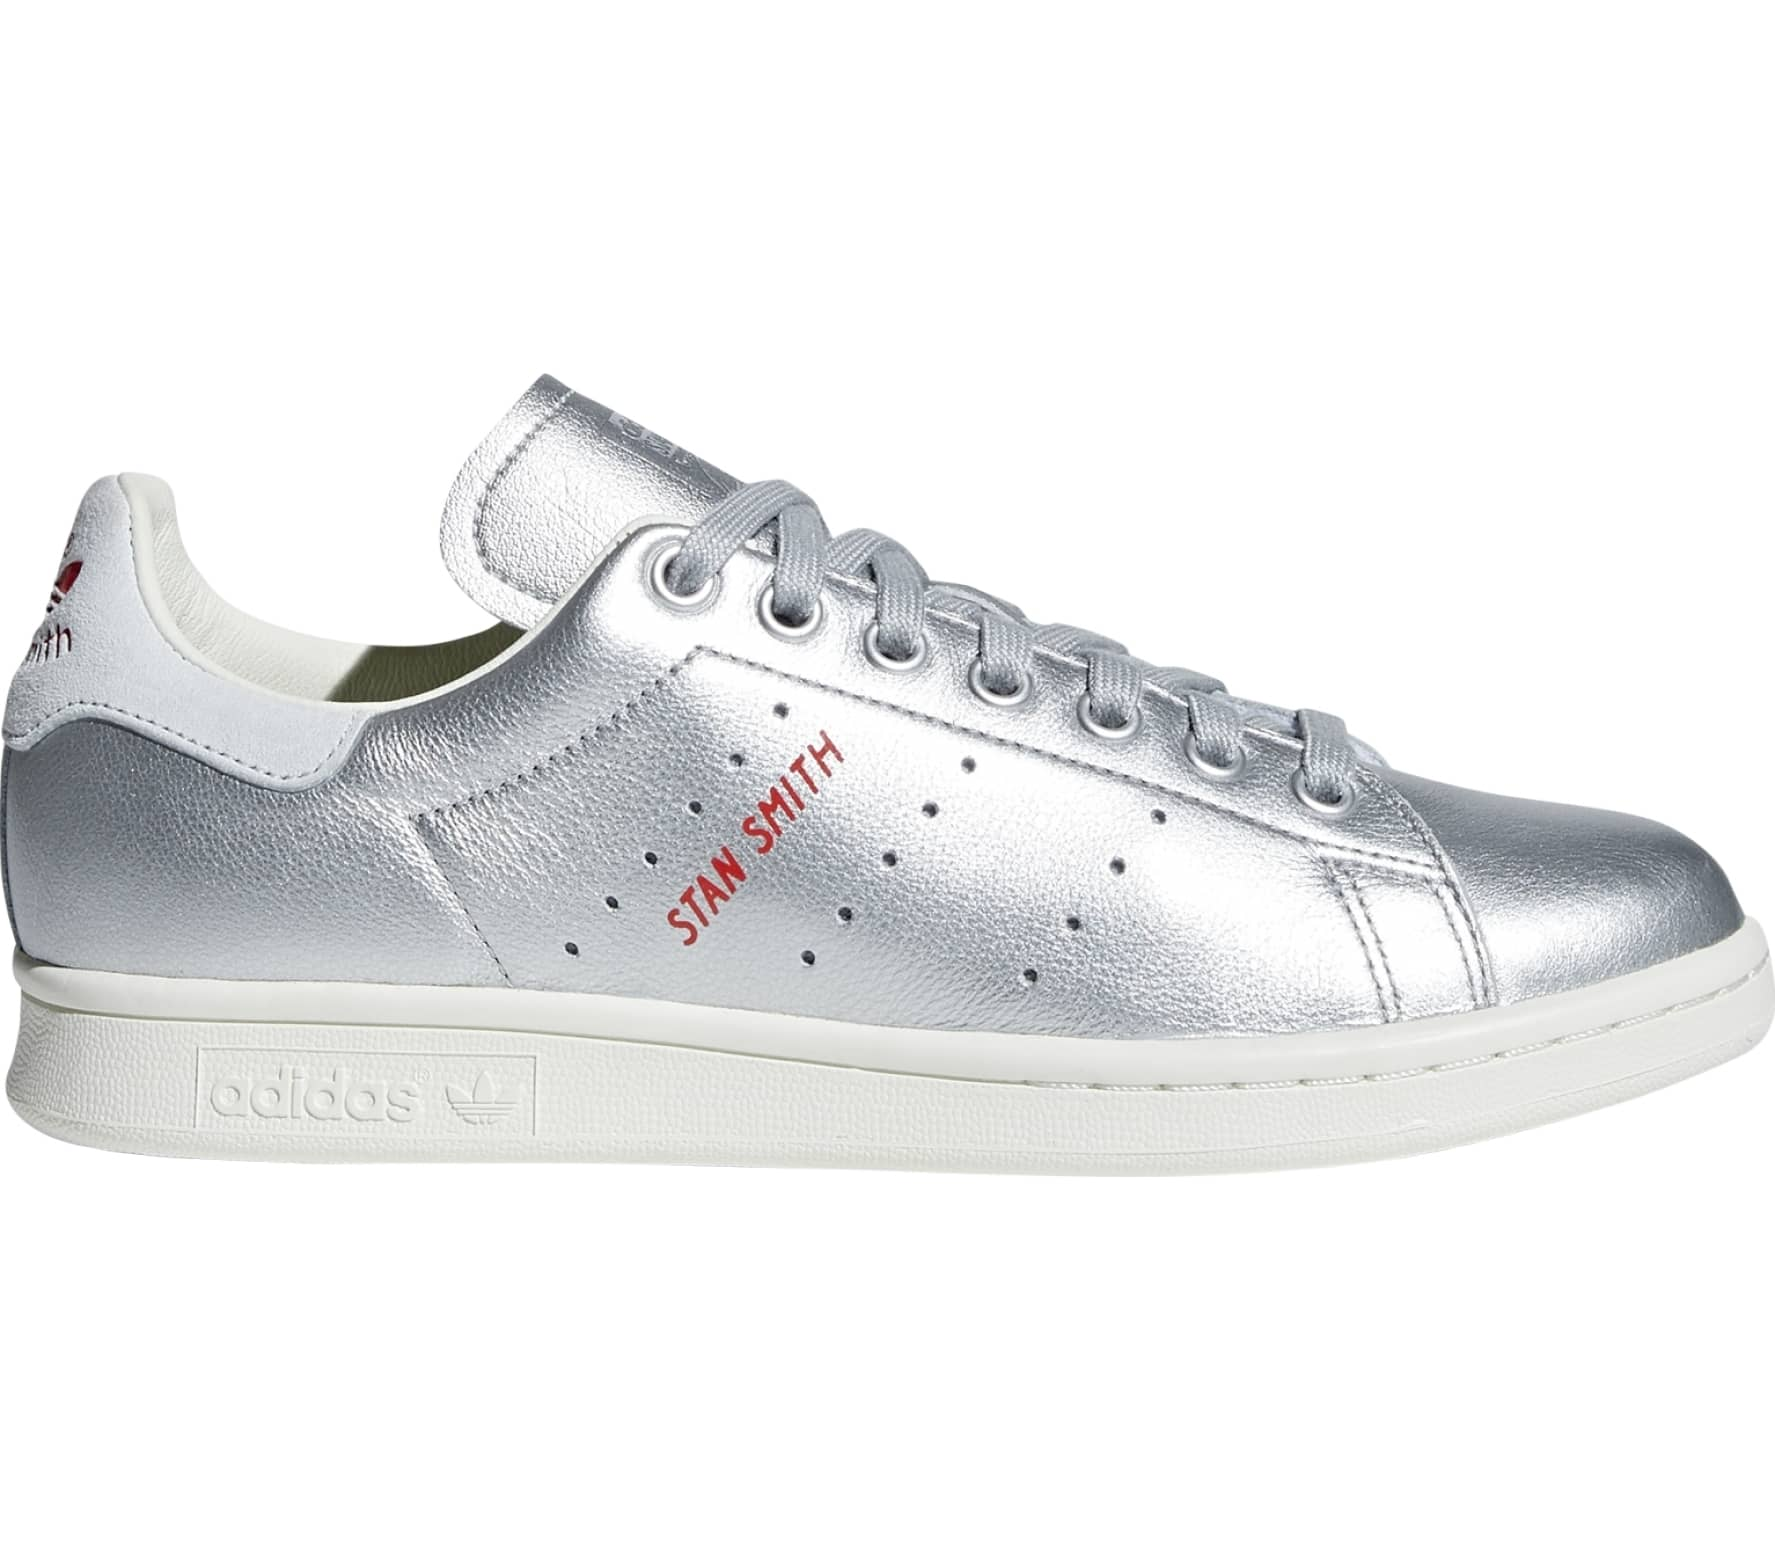 0278905c12c Adidas Originals Stan Smith dames sneakers (zilver) online kaufen ...